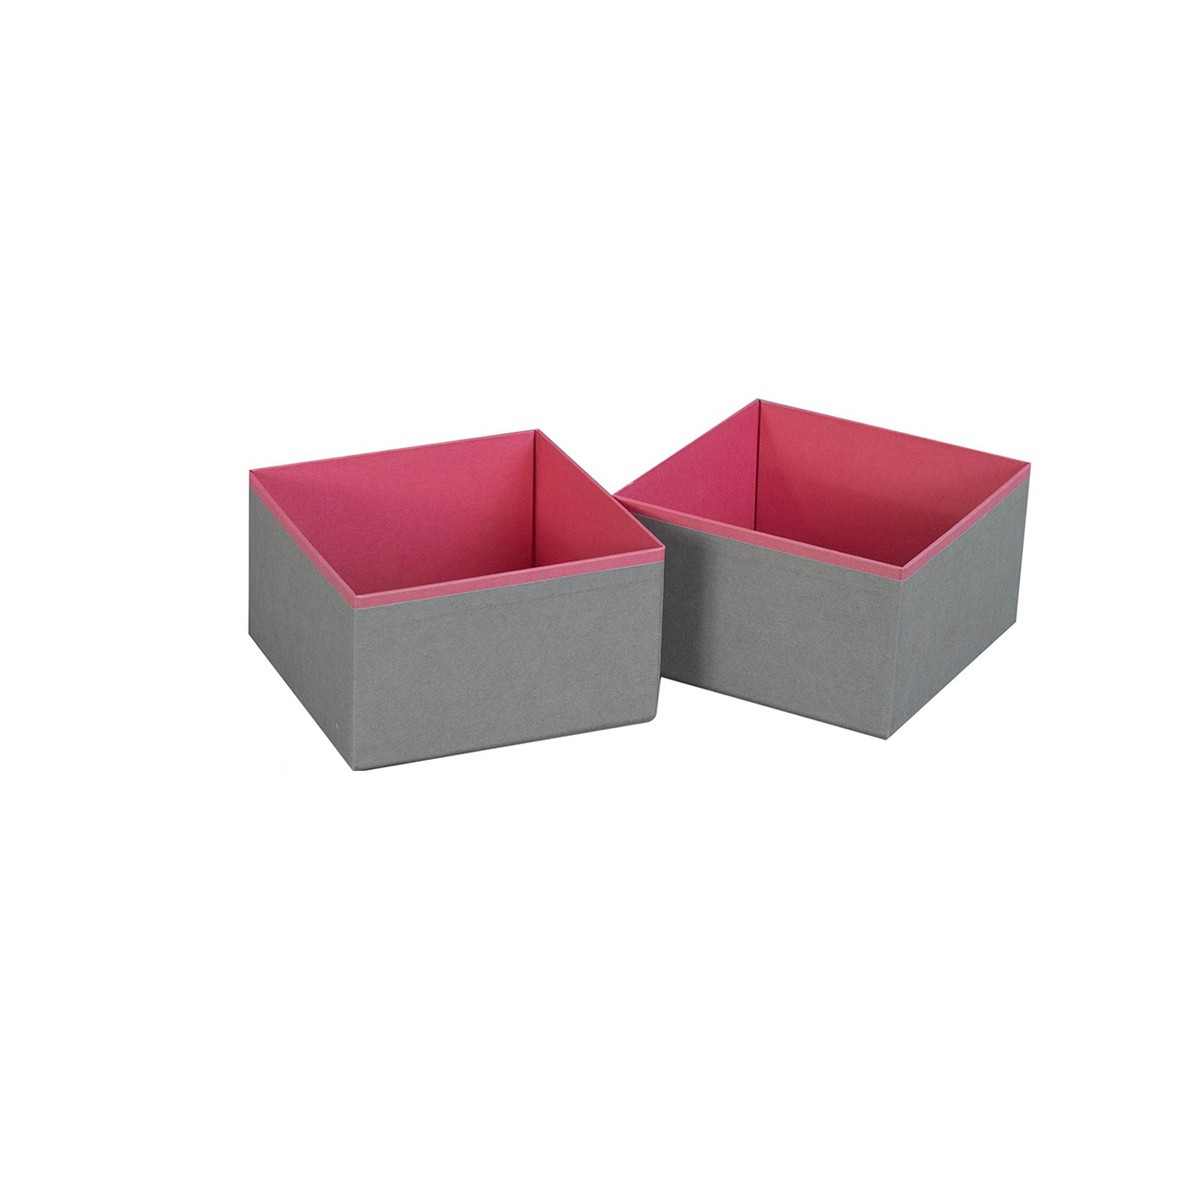 organiseurs de tiroir carton gris fuchsia rangement v tements. Black Bedroom Furniture Sets. Home Design Ideas